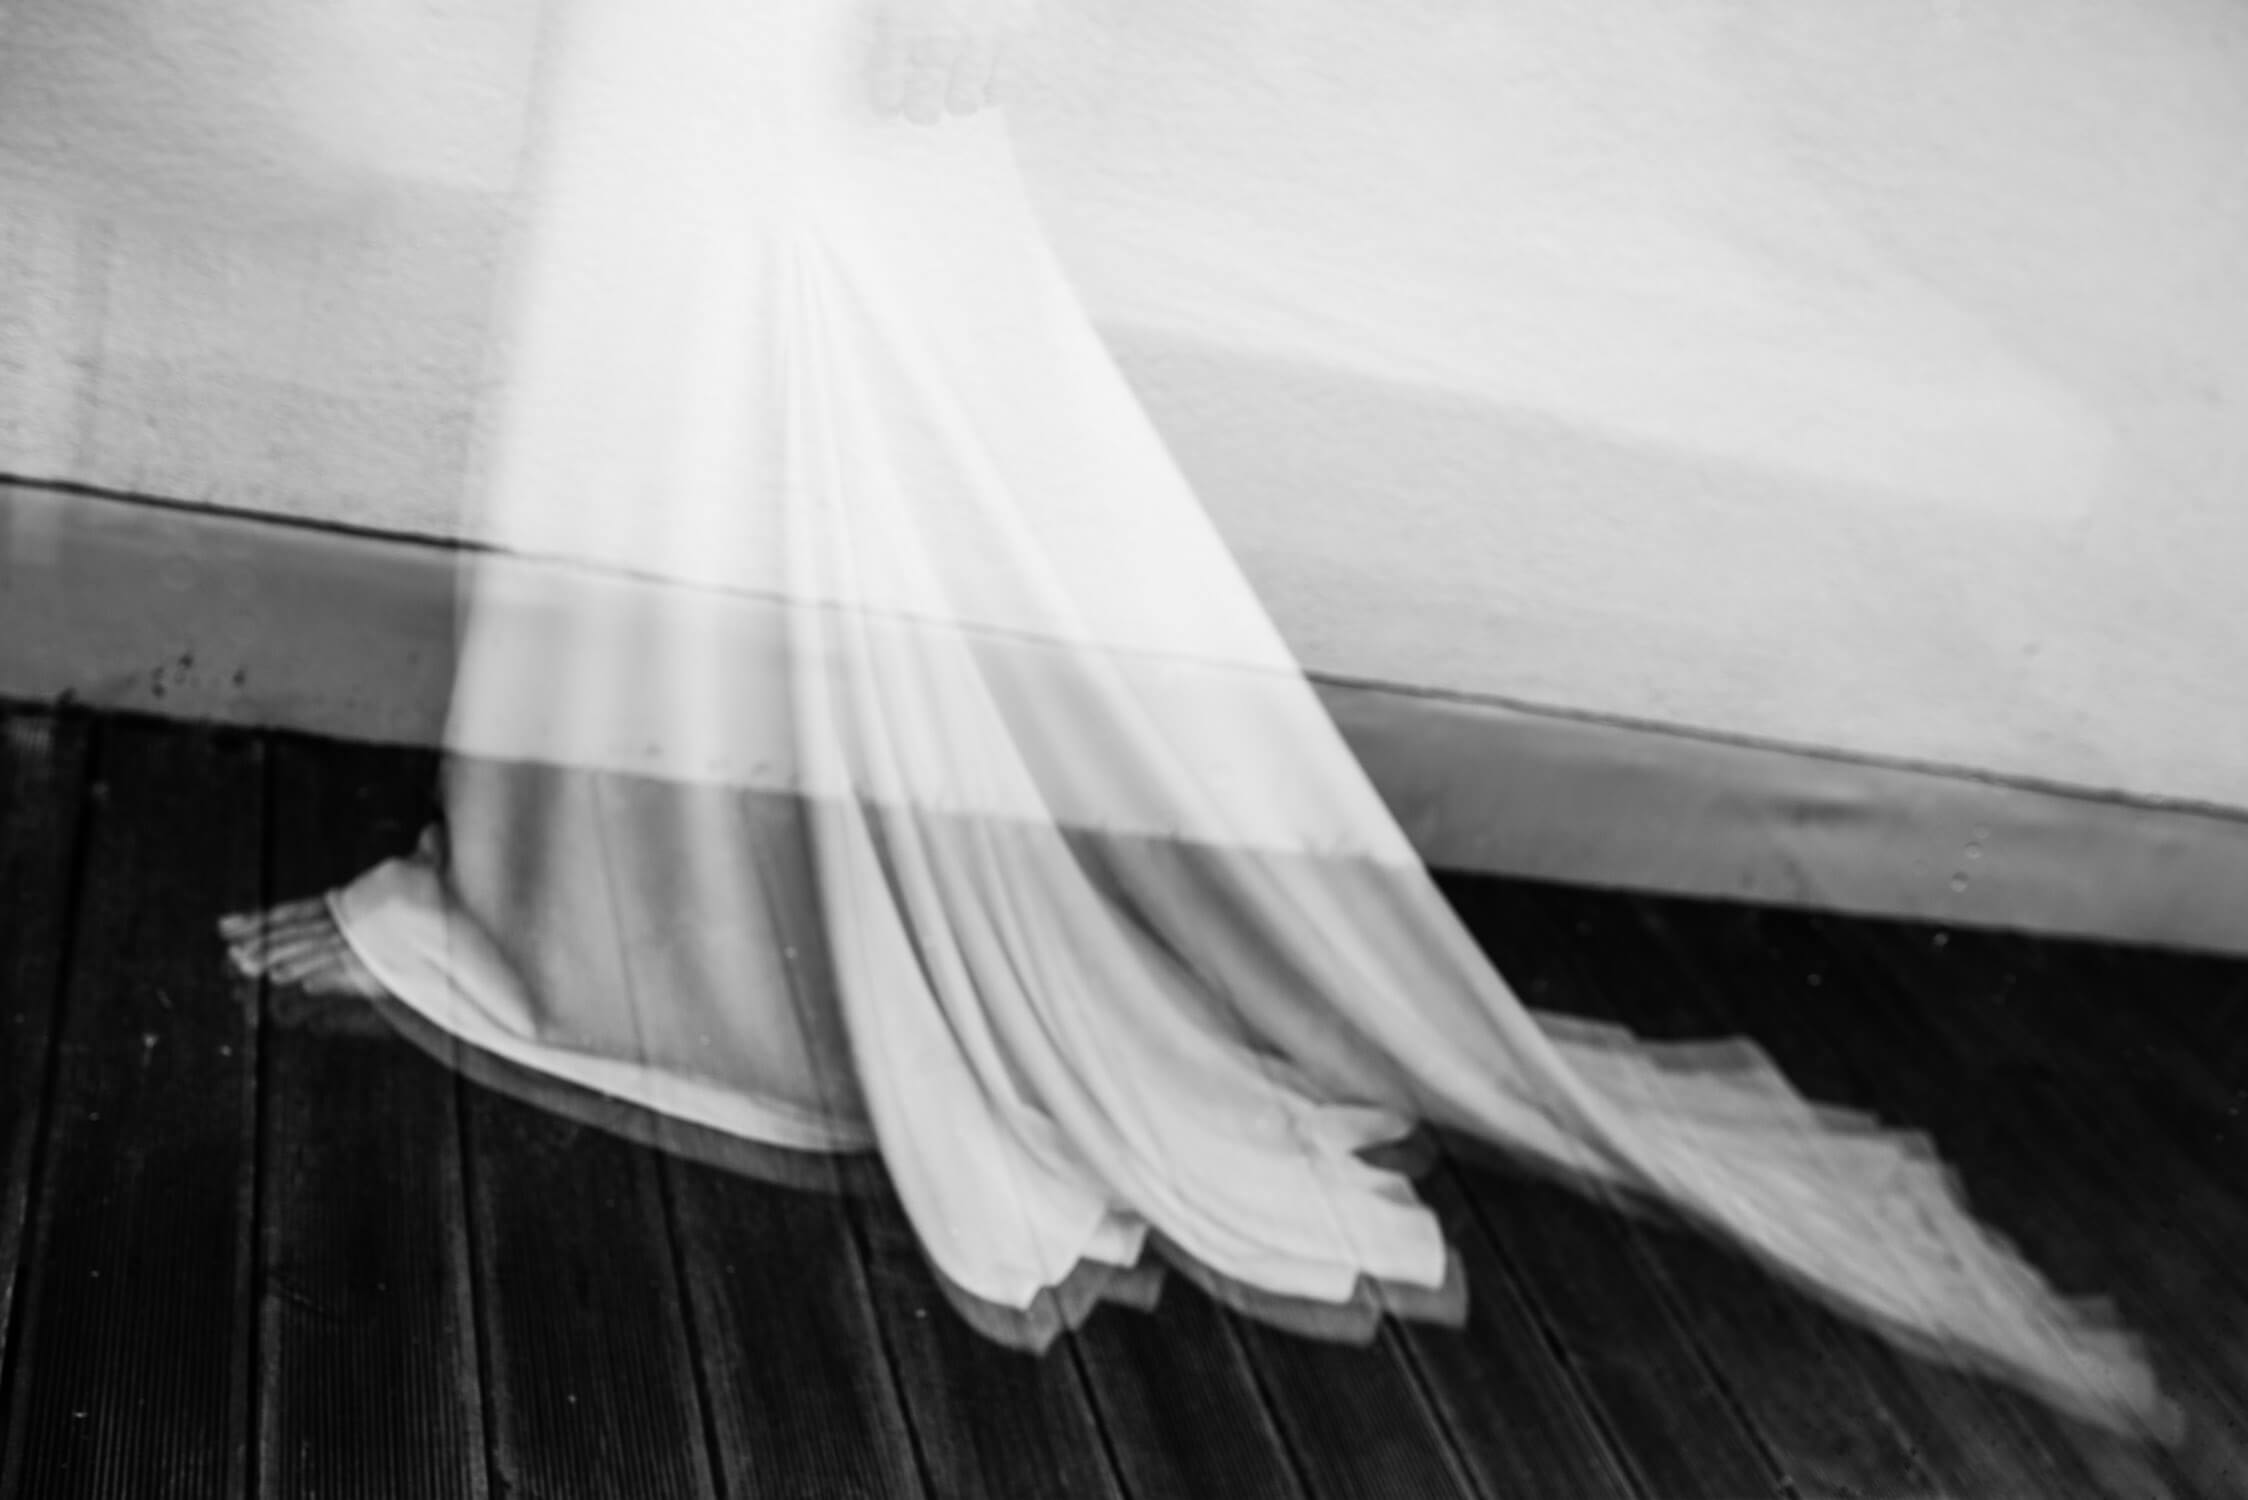 bride contemporary wedding dress photography artistic